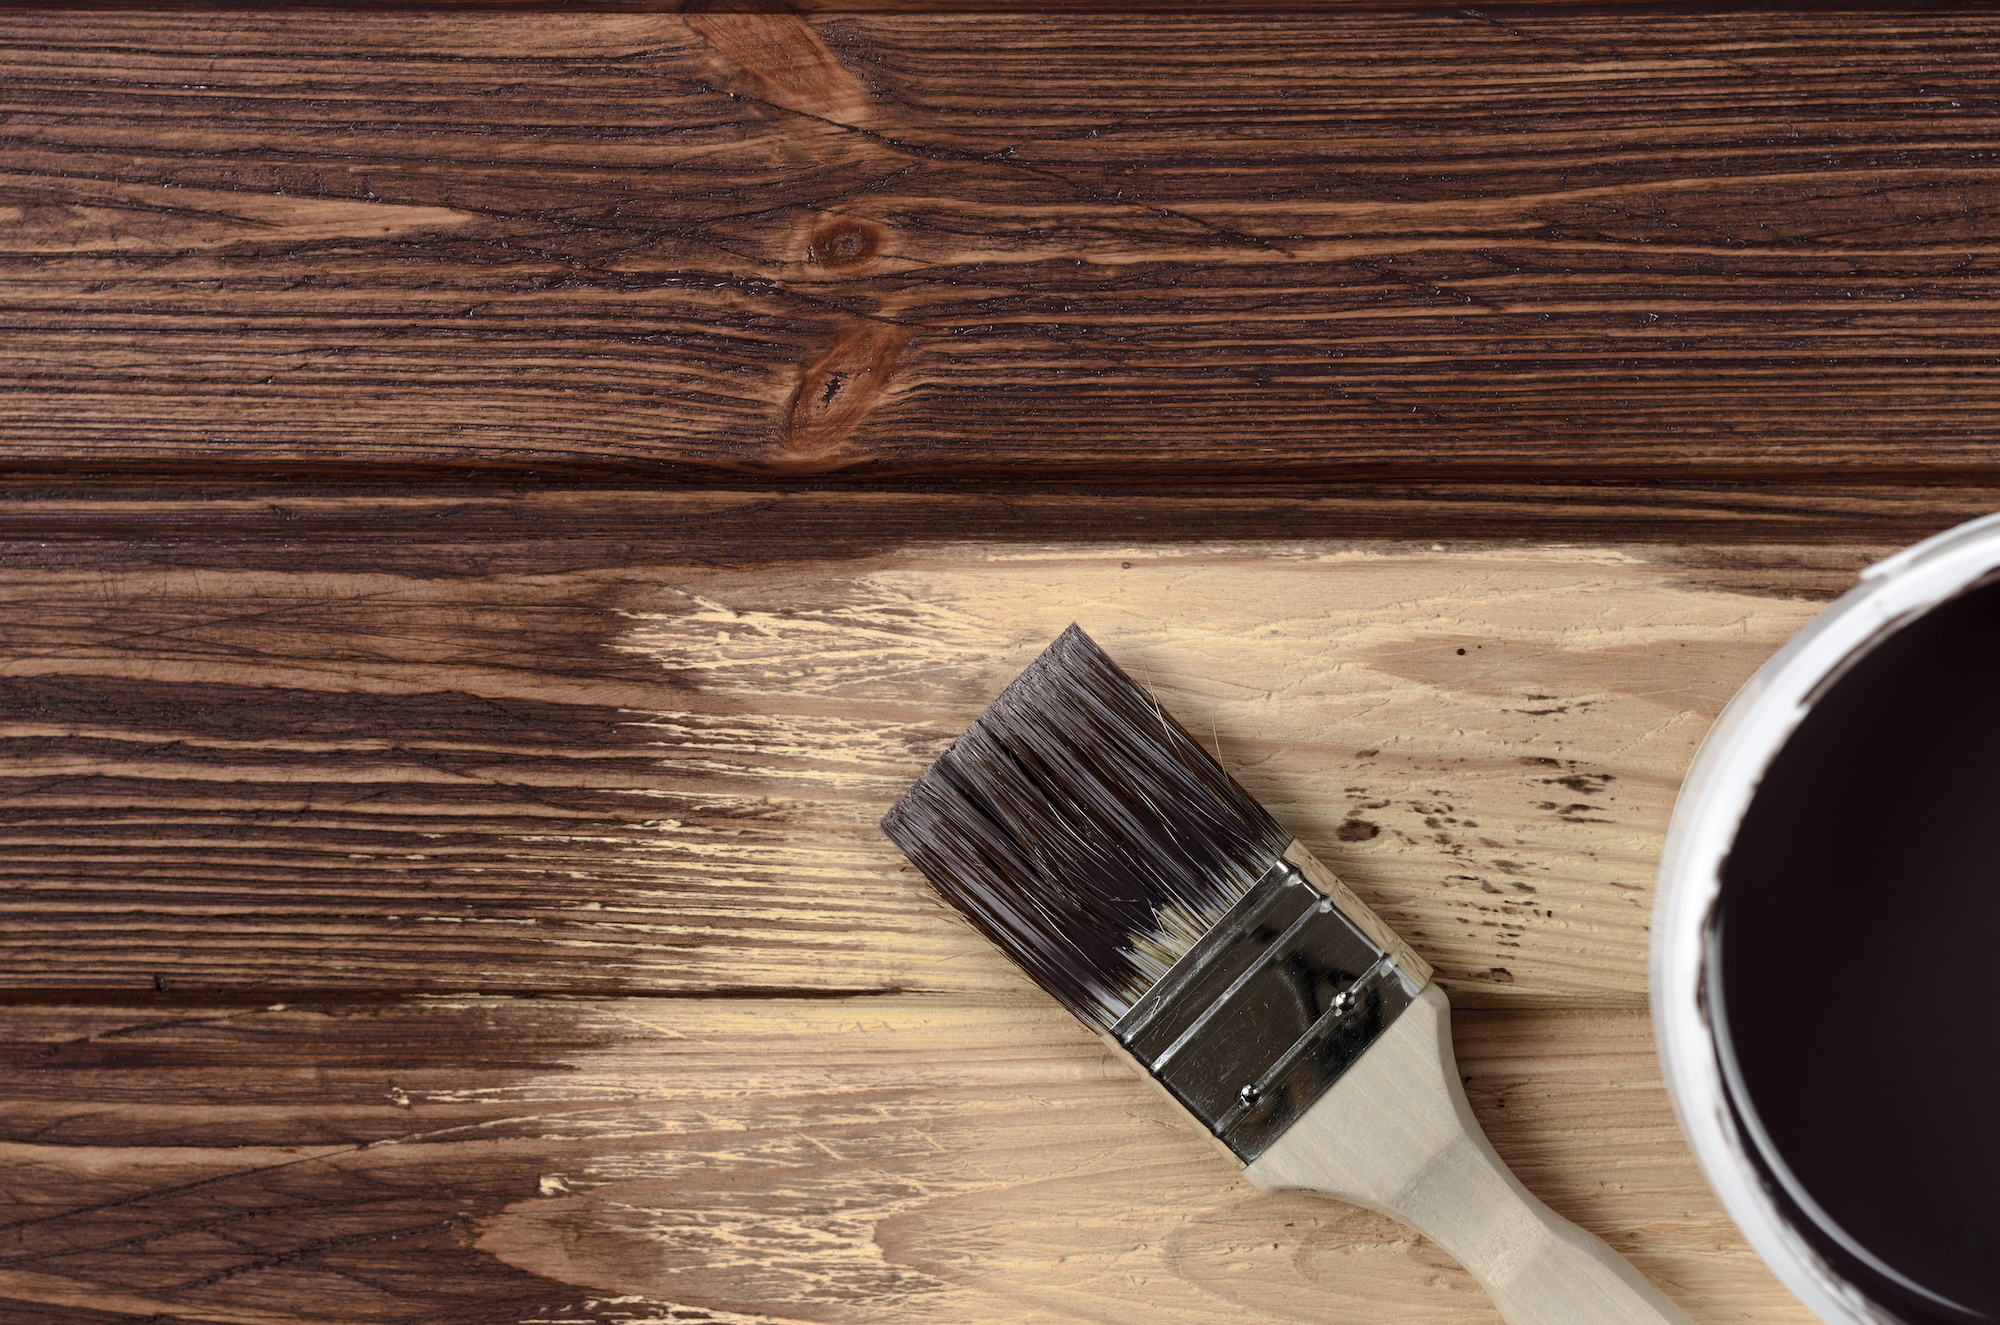 Anderson Painting translucent deck staining